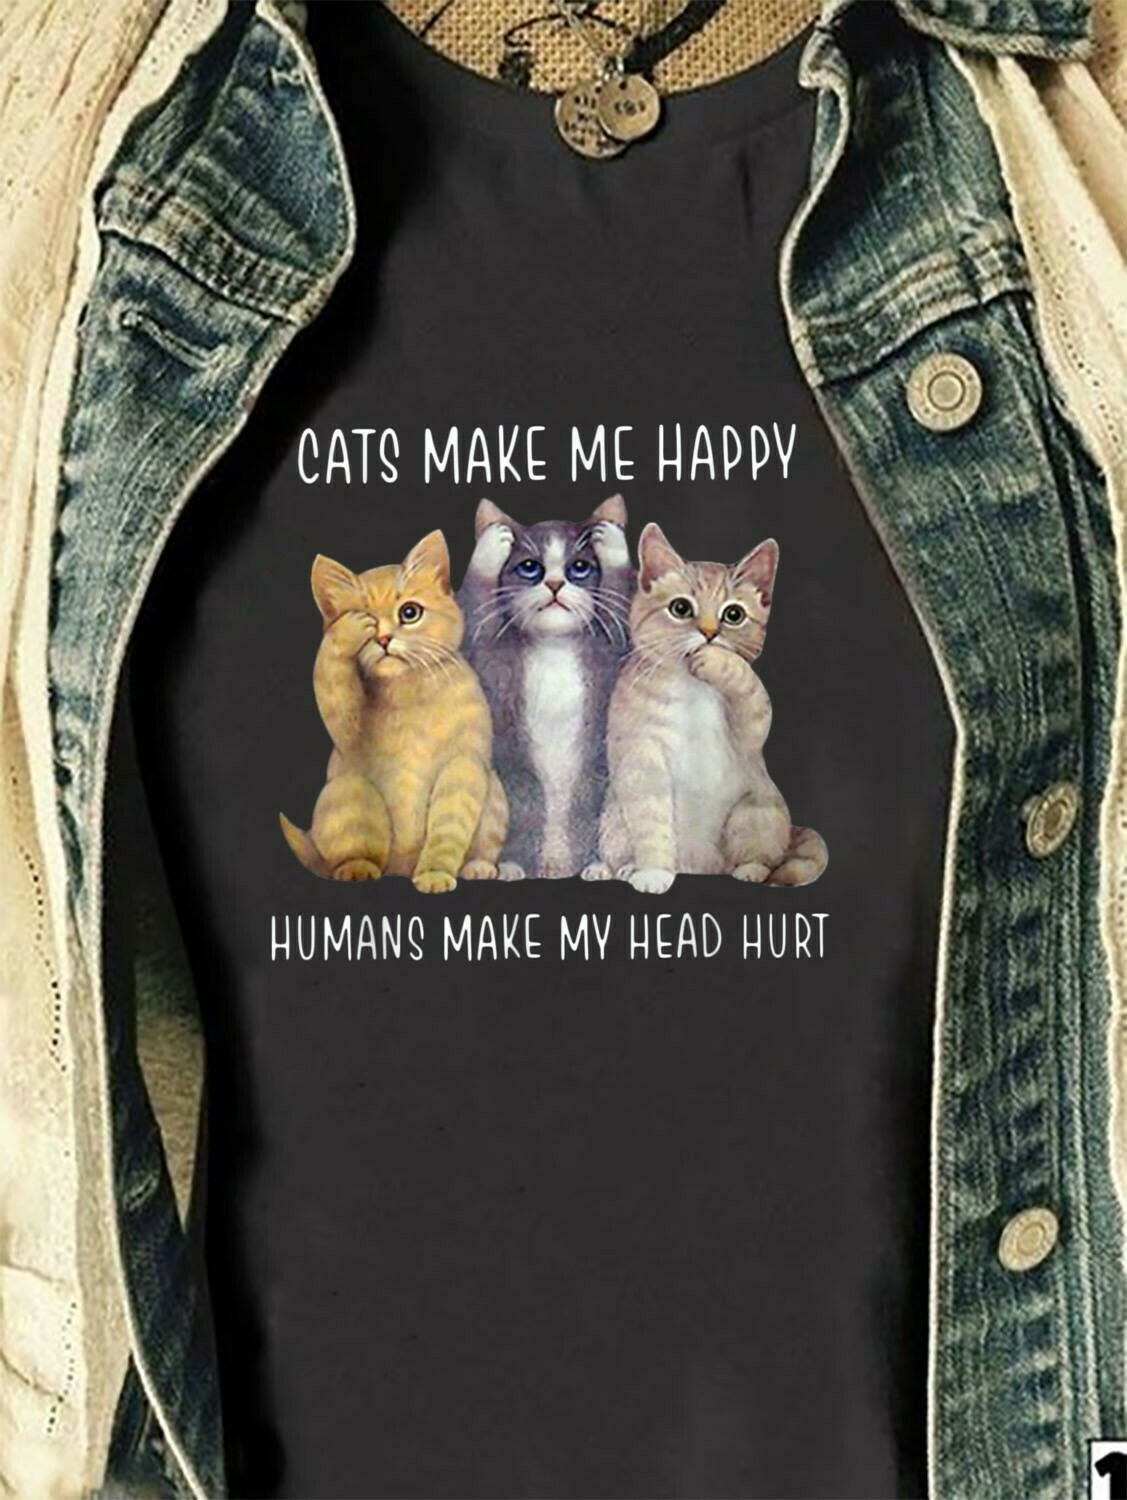 Cats Make Me Happy Humans Make My Head Hurt Gift for Cat Lovers T-Shirt Hoodie Sweatshirt Sweater Tee Kids Youth Gifts Jolly Family Gifts